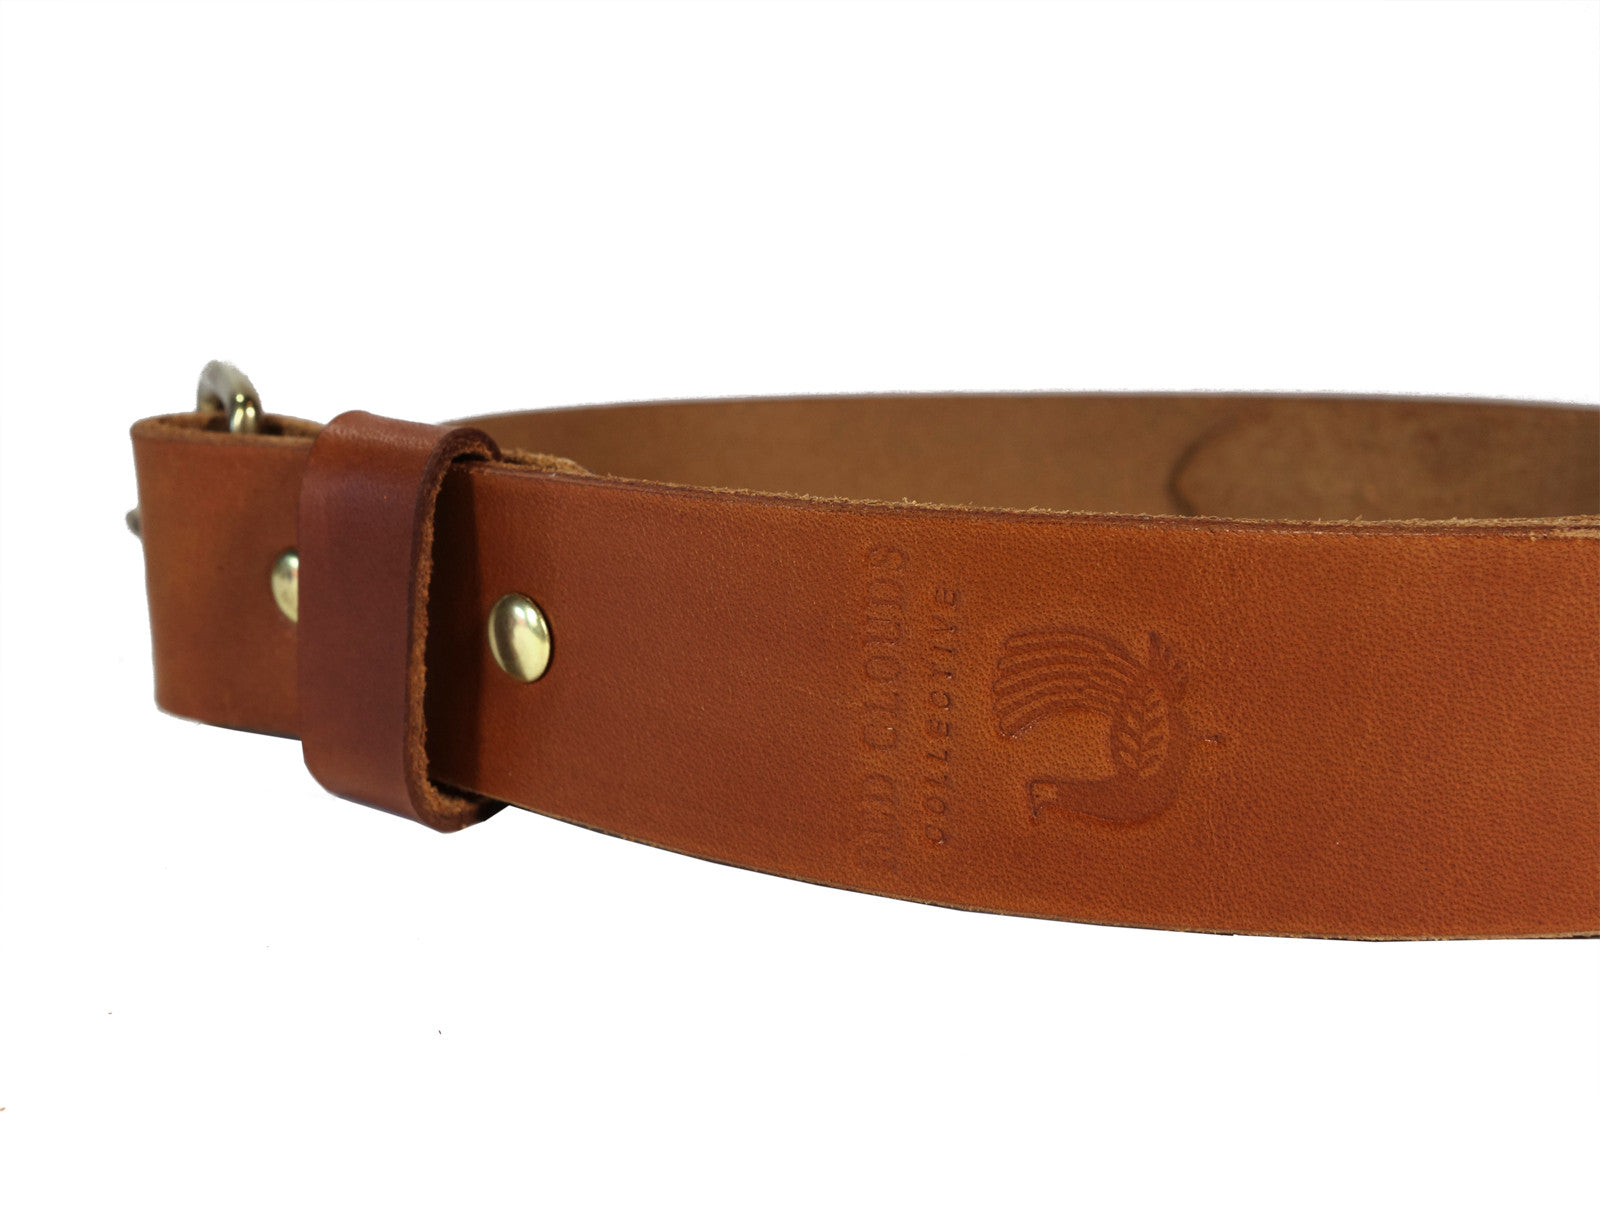 Leather belt, solid brass buckle, handmade, handcrafted, made in the usa, made in america, veg tan leather, built to last, always better with time, red clouds collective